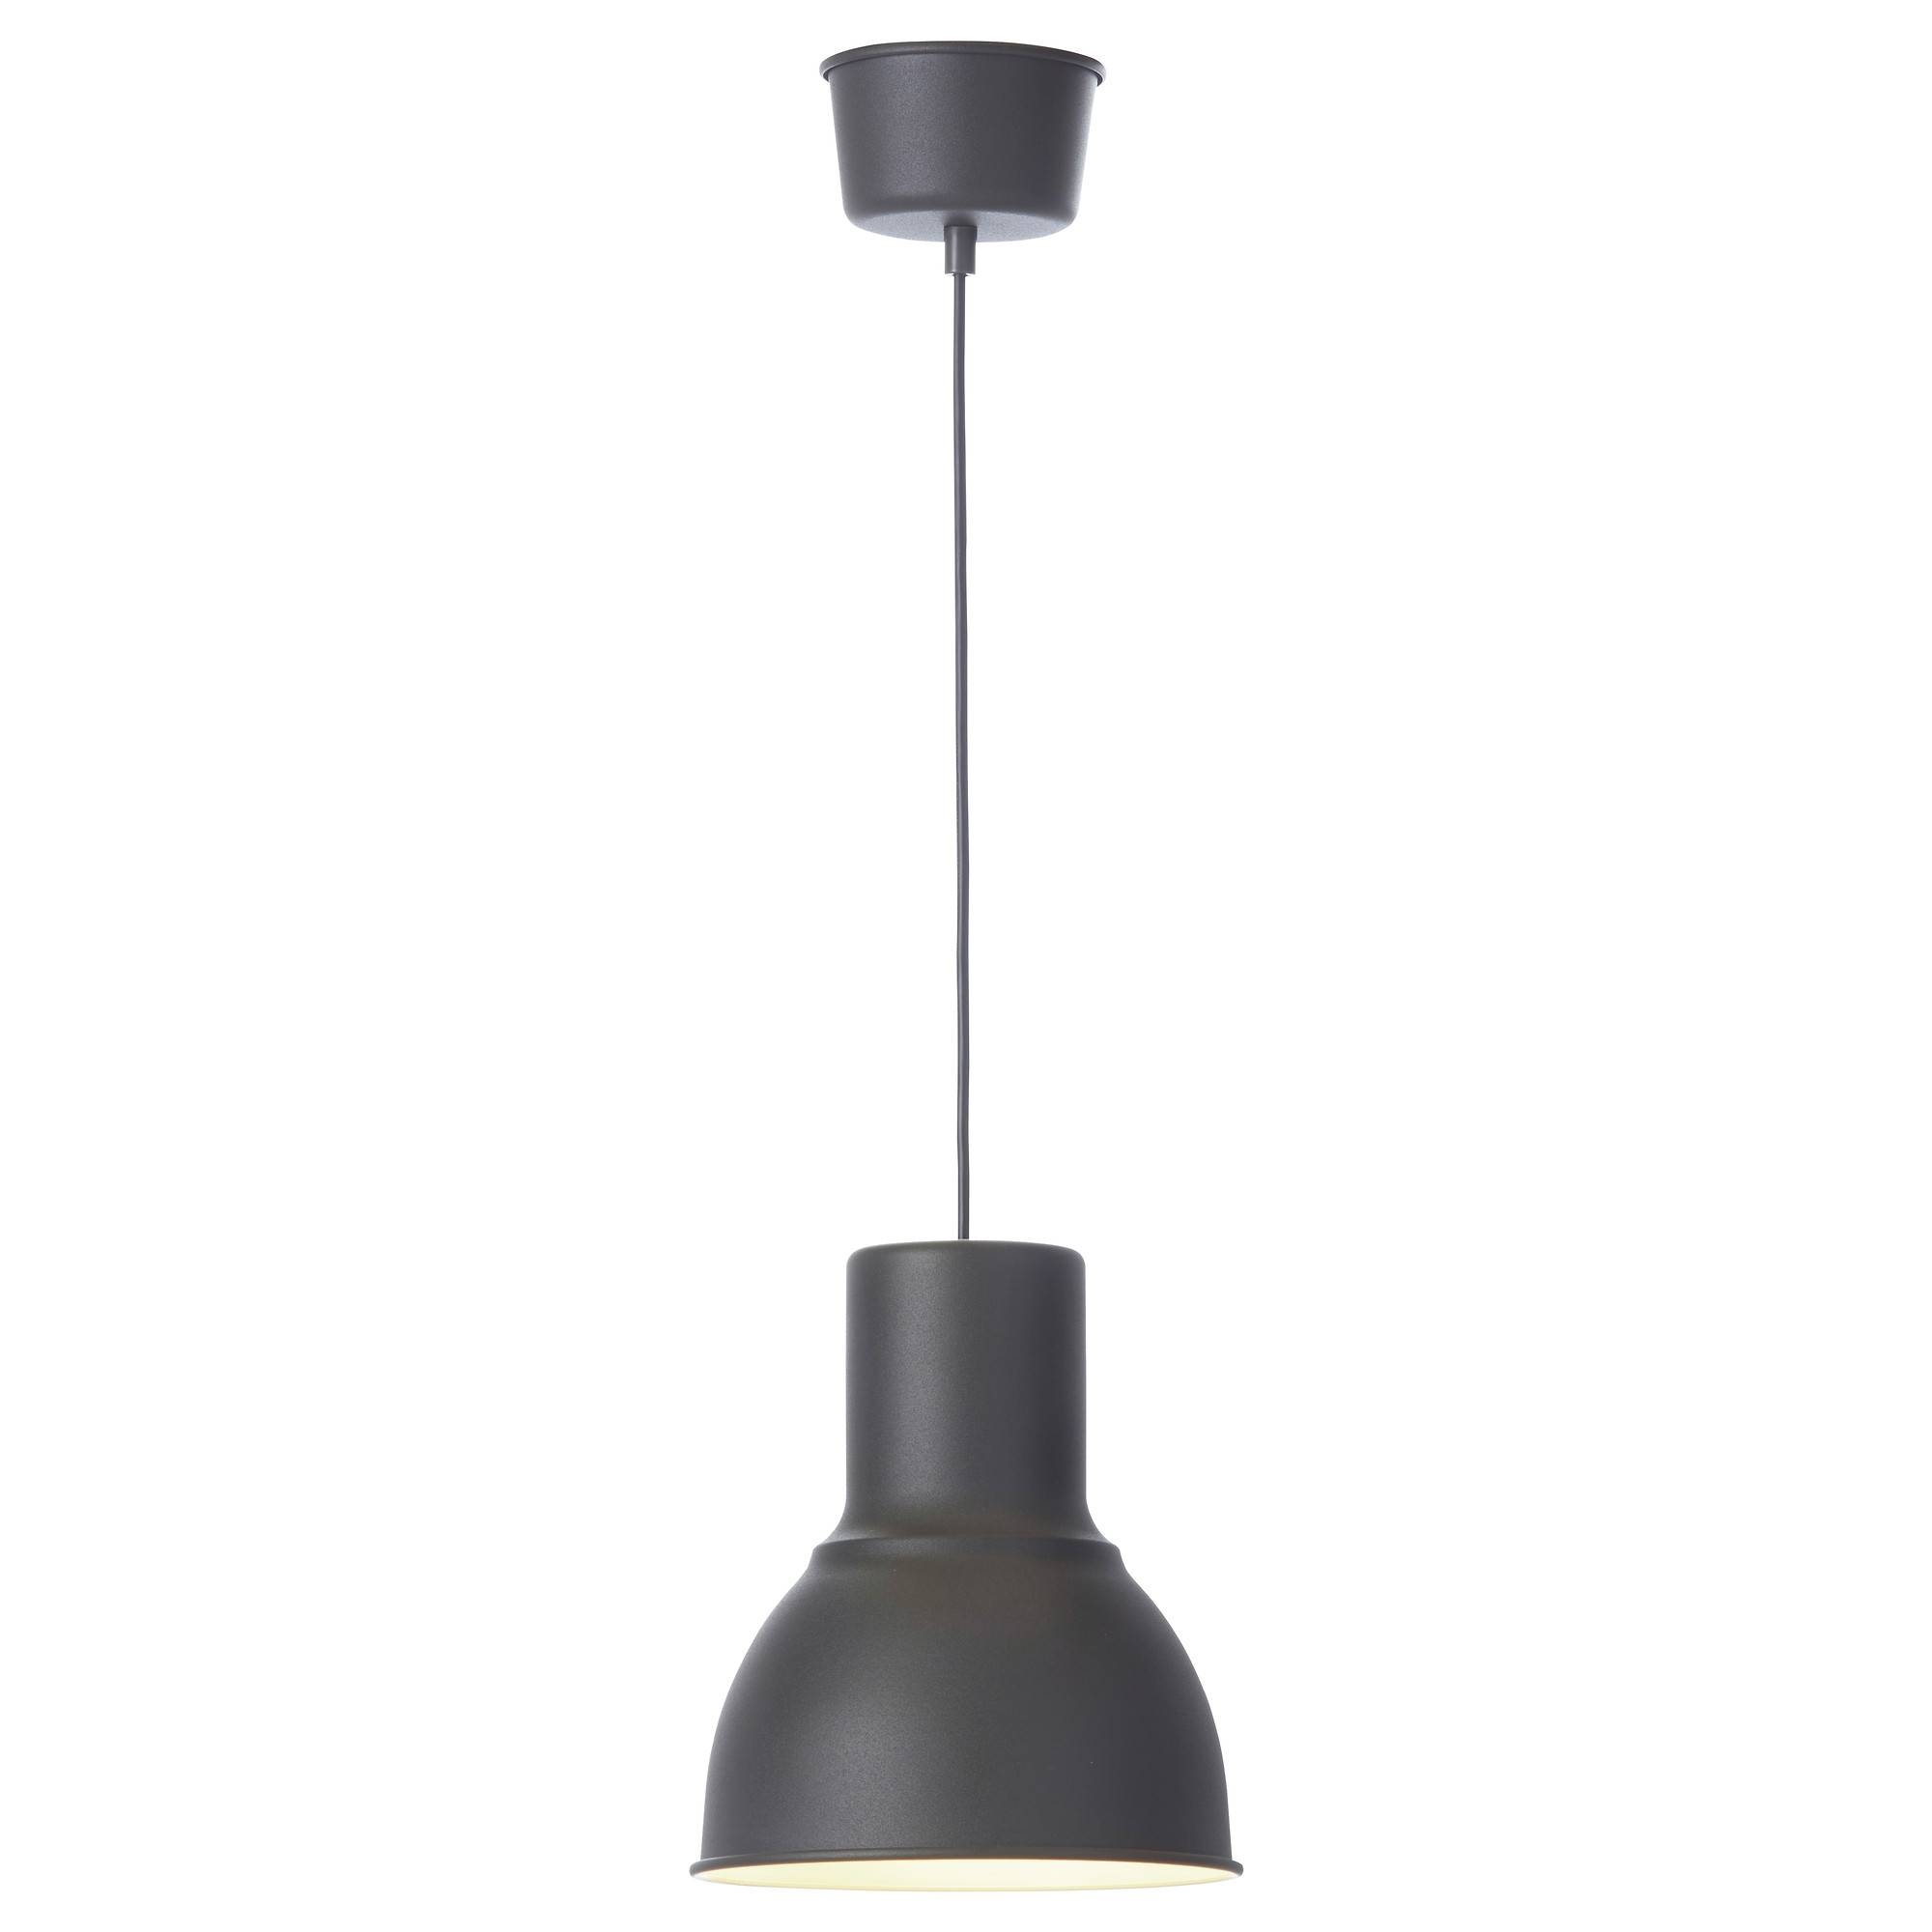 Hektar Pendant Lamp Dark Grey 22 Cm - Ikea pertaining to Ikea Ceiling Lights Fittings (Image 5 of 15)